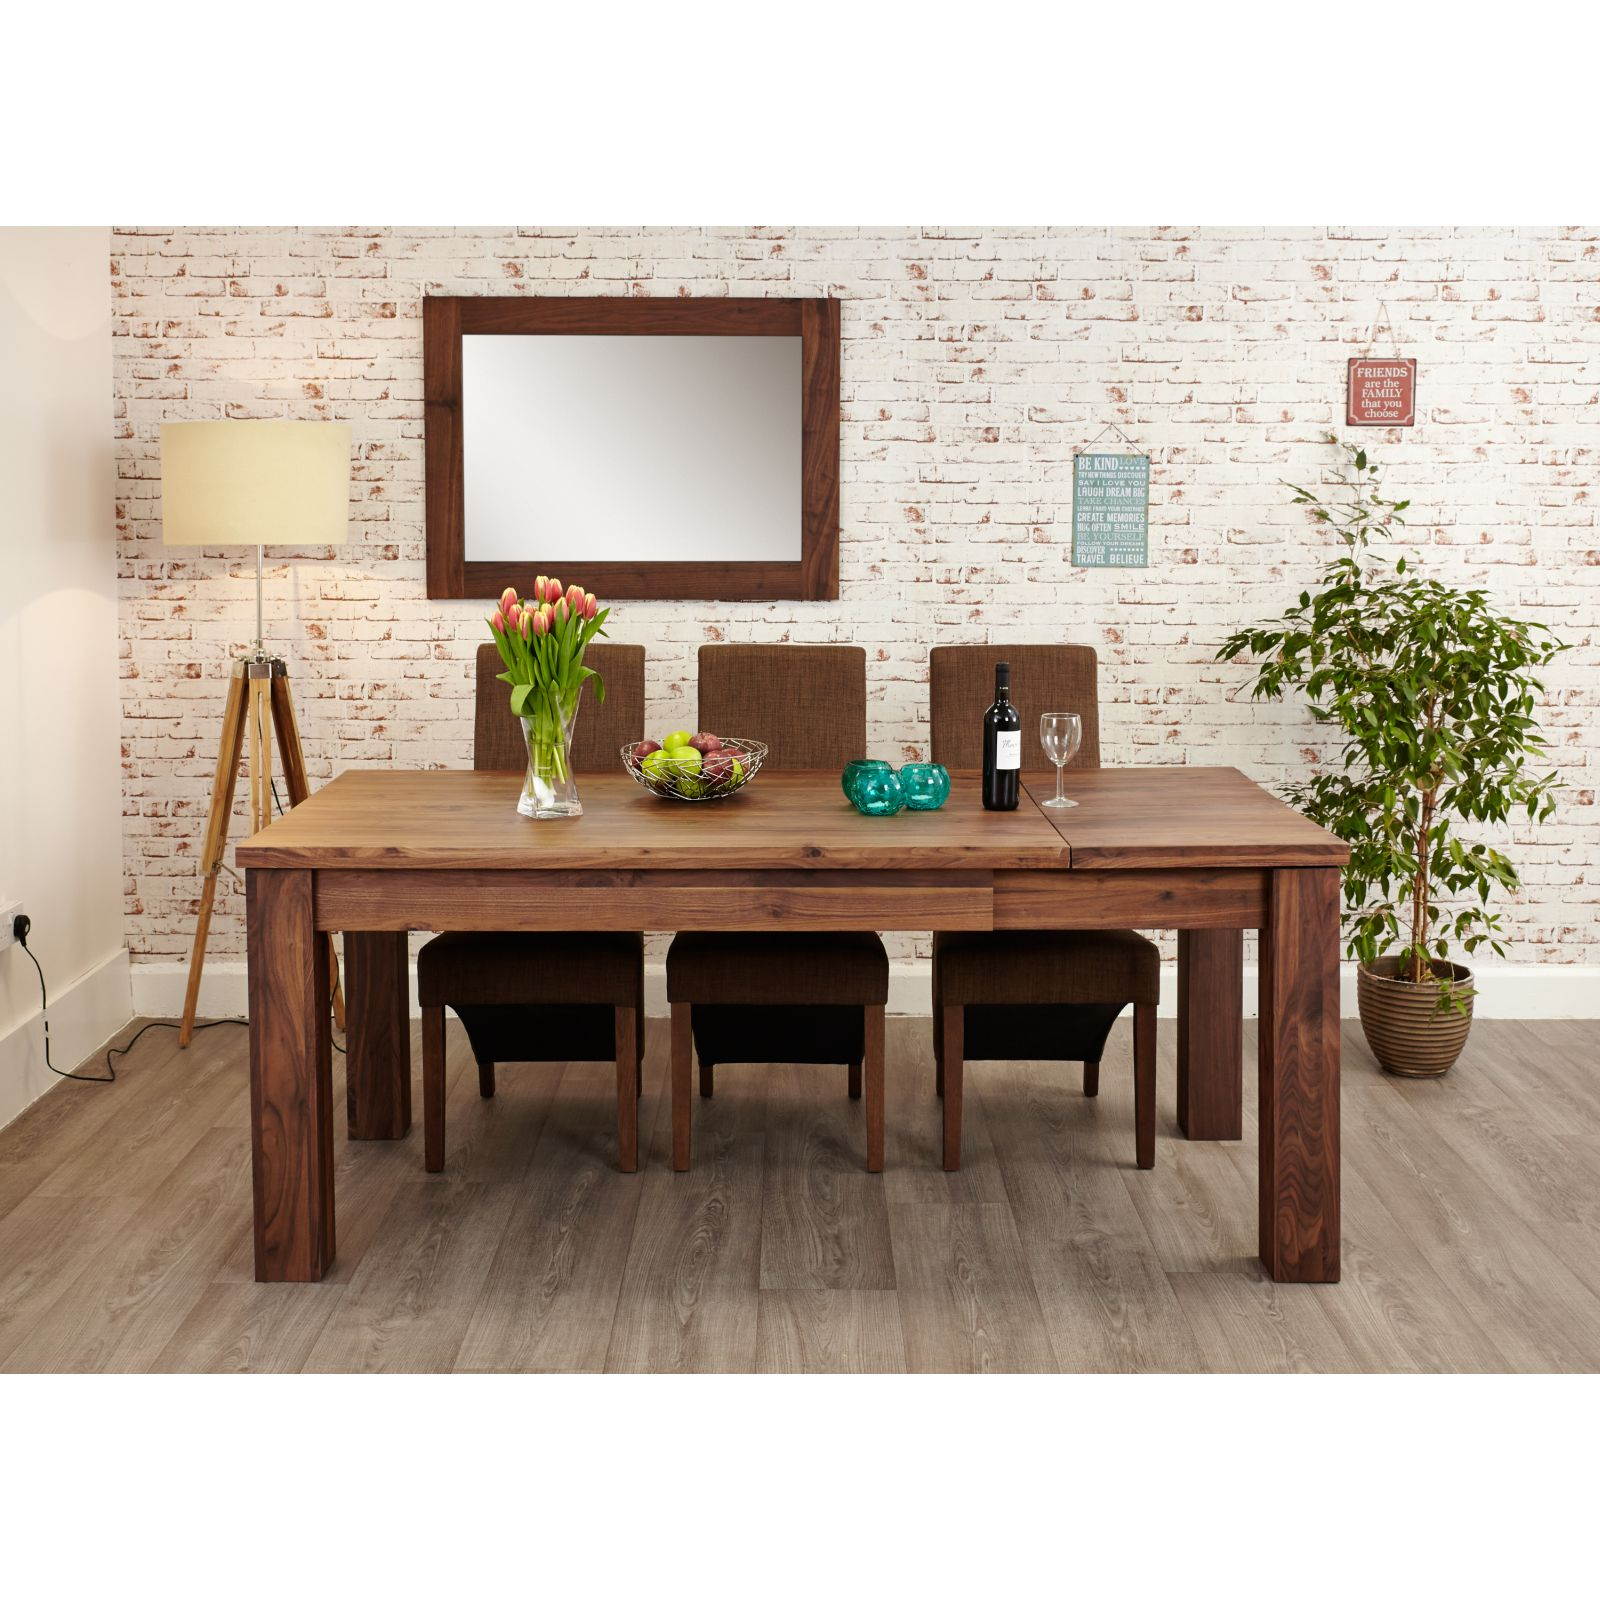 Linea Solid Walnut Furniture Large Dining Room Extending